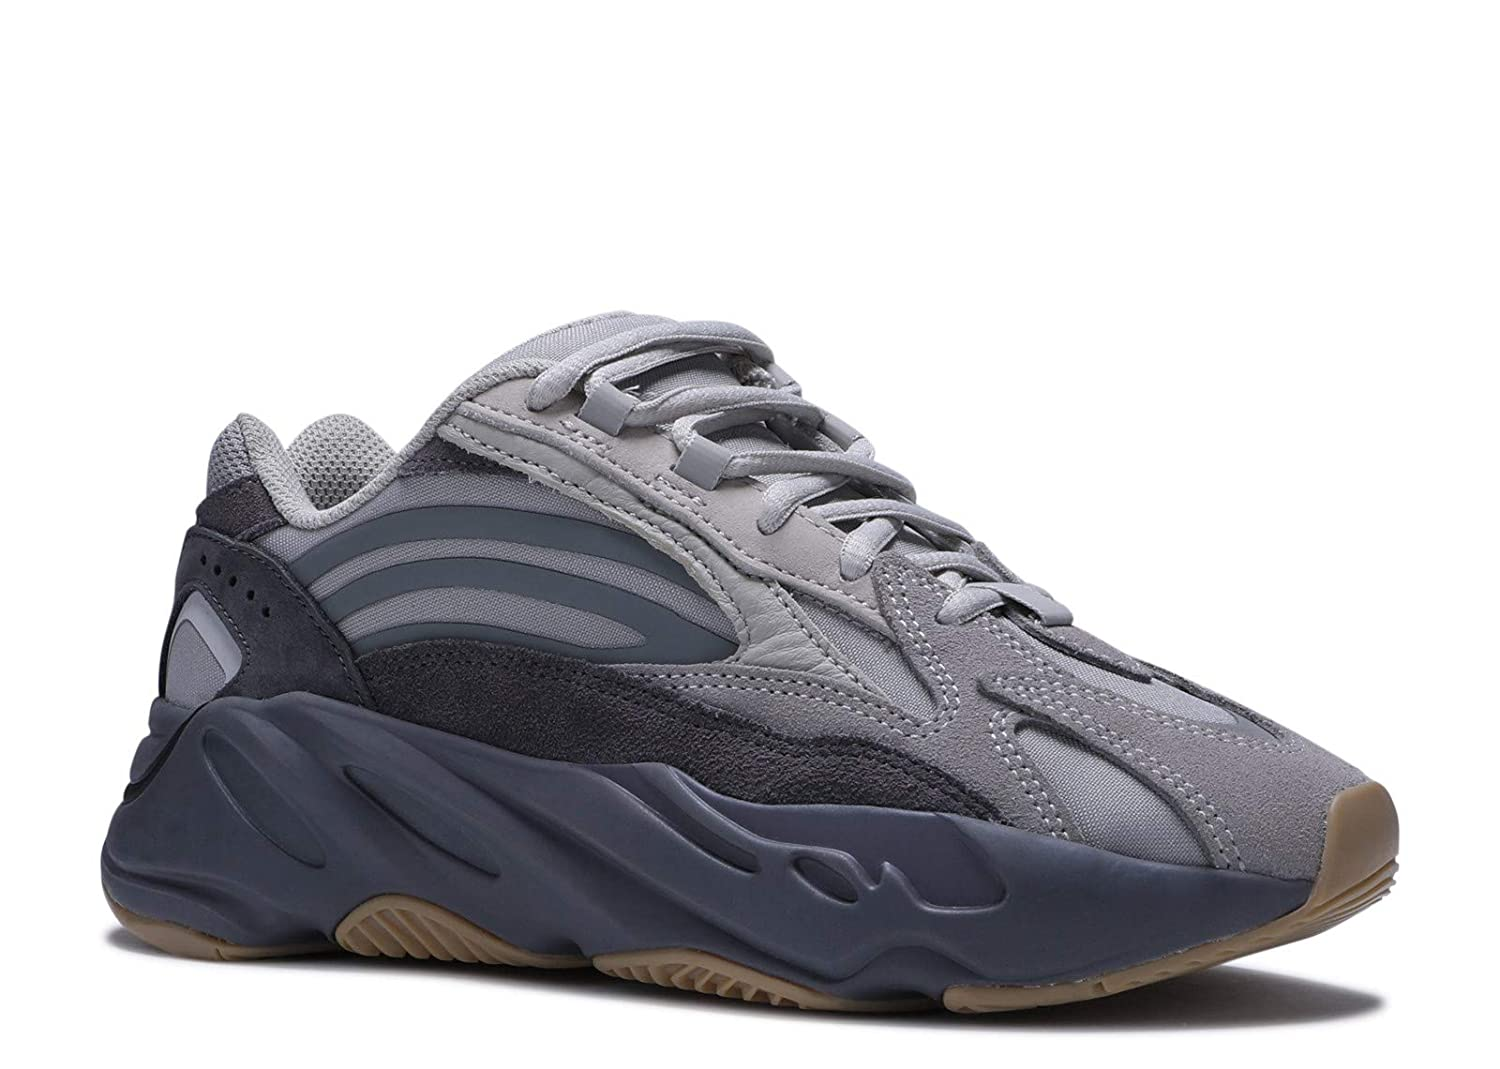 best service 104a6 d9395 adidas Yeezy Boost 700 V2 'TEPHRA' - FU7914